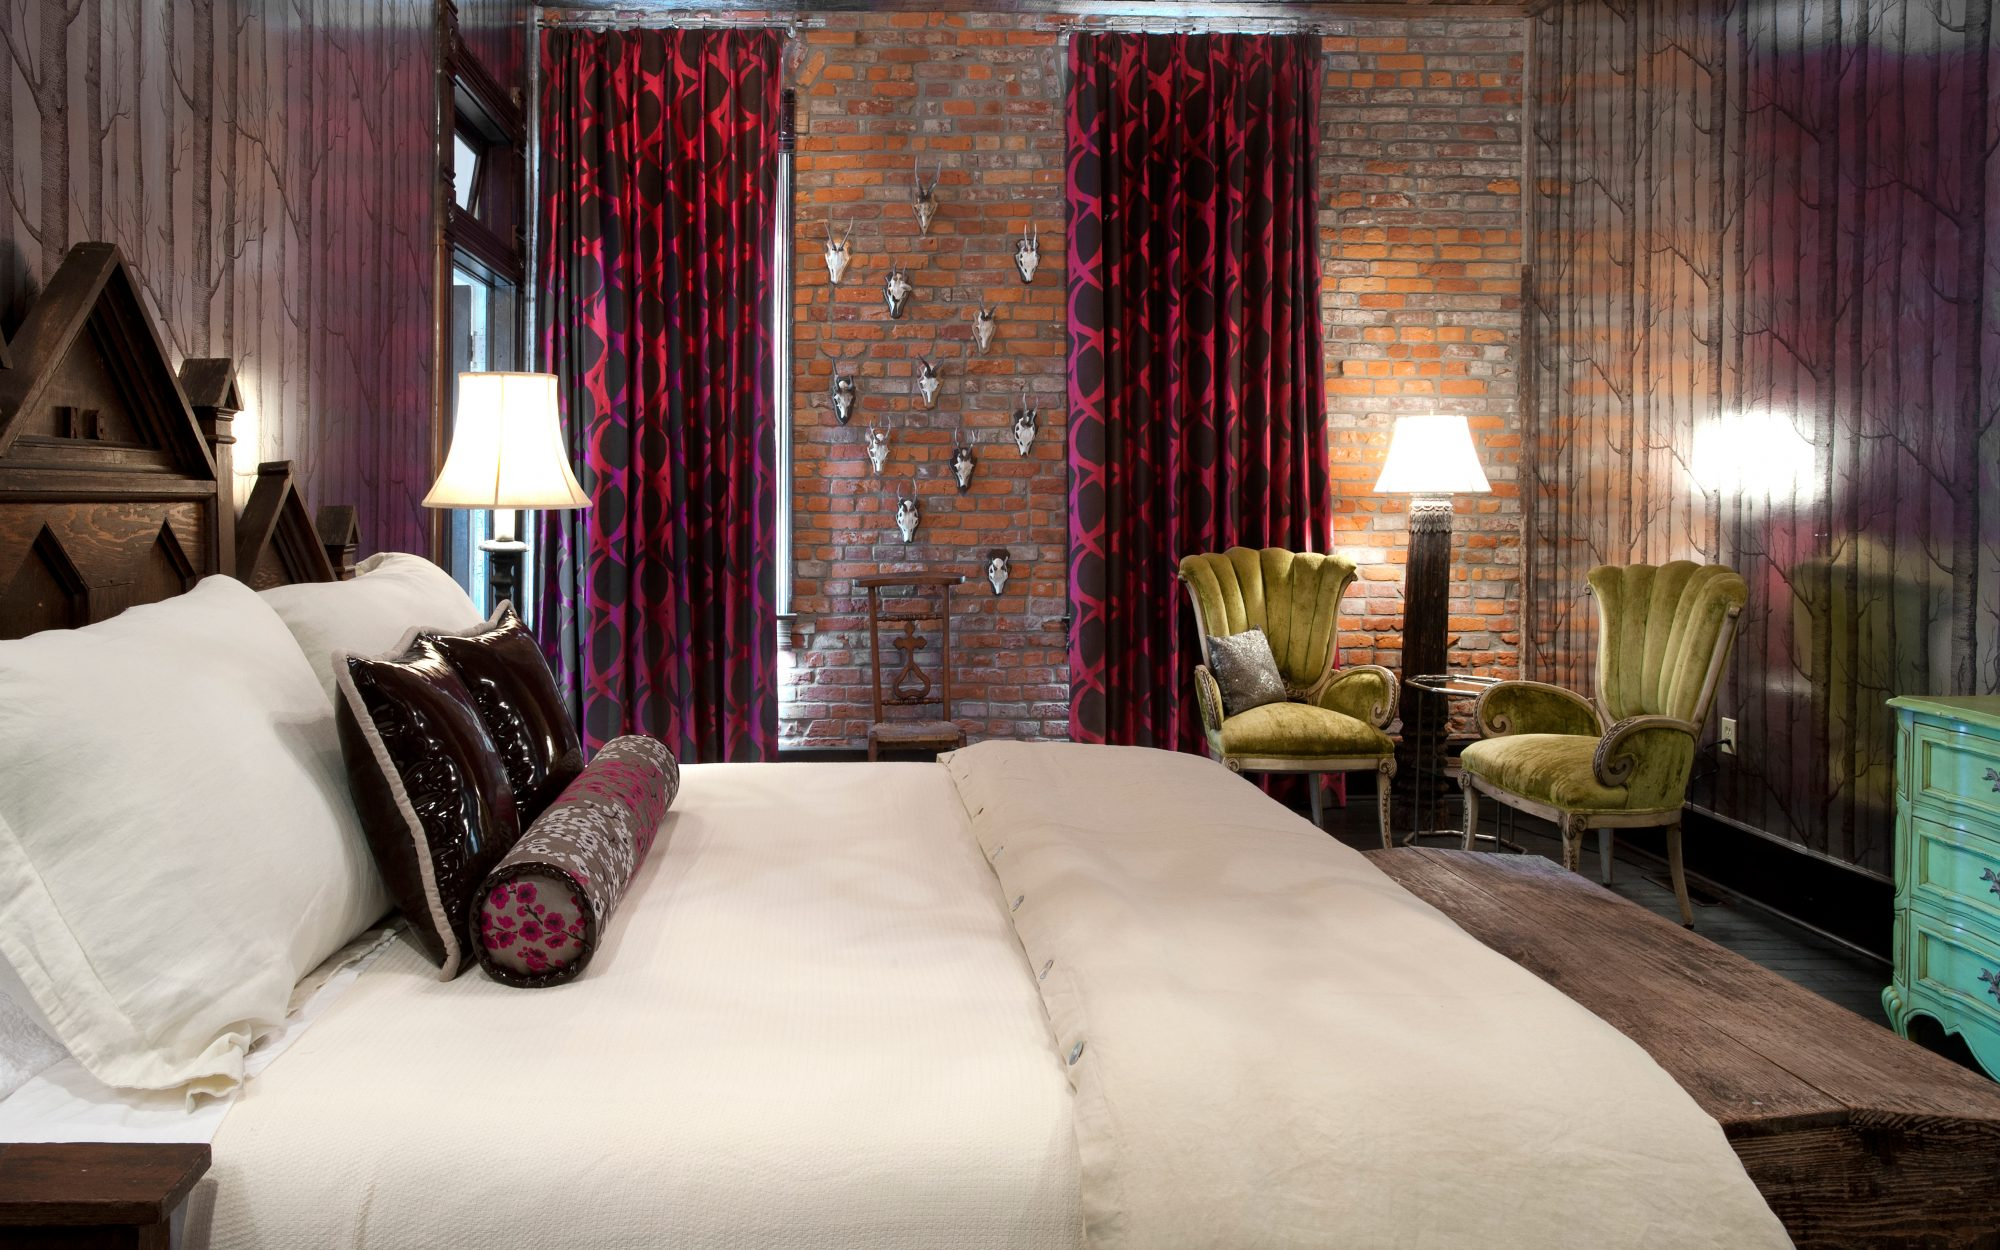 A Hip New Breed of Inns: The Ladysmith, Tishomingo, OK